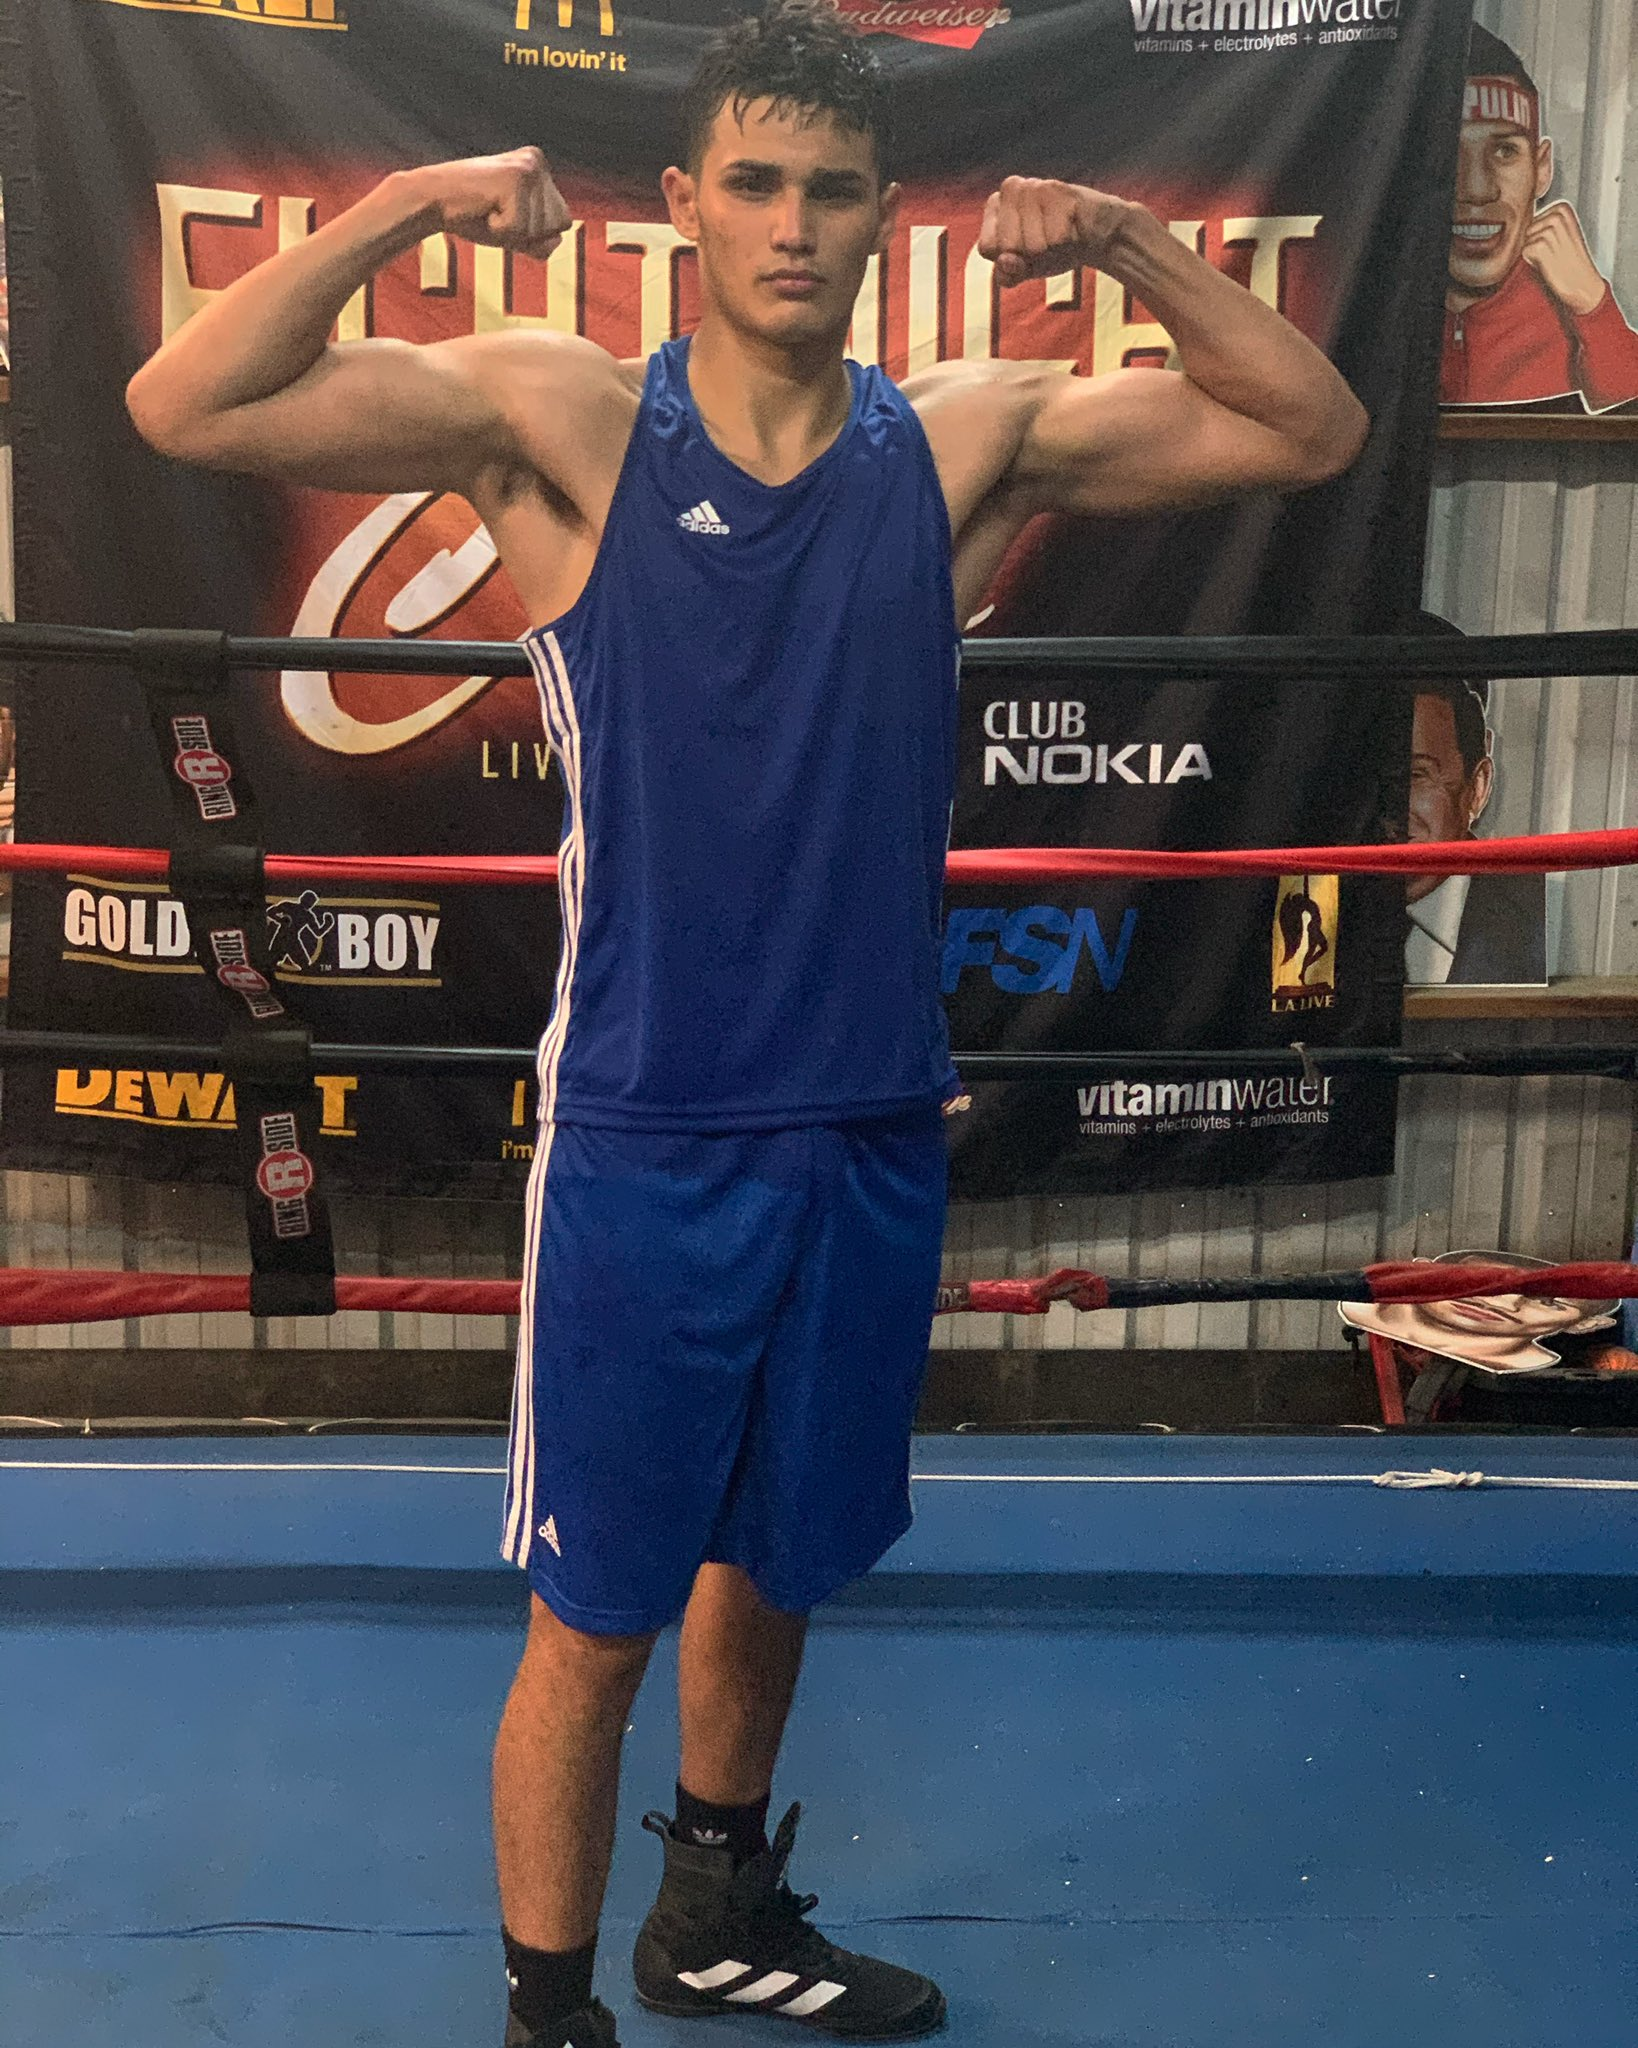 """E63F65BB 7A1F 47BF A844 6D4E0D06C33D - Evan Sanchez Returns To The Ring, Post Covid, """"Like Nothing Ever Happened."""""""